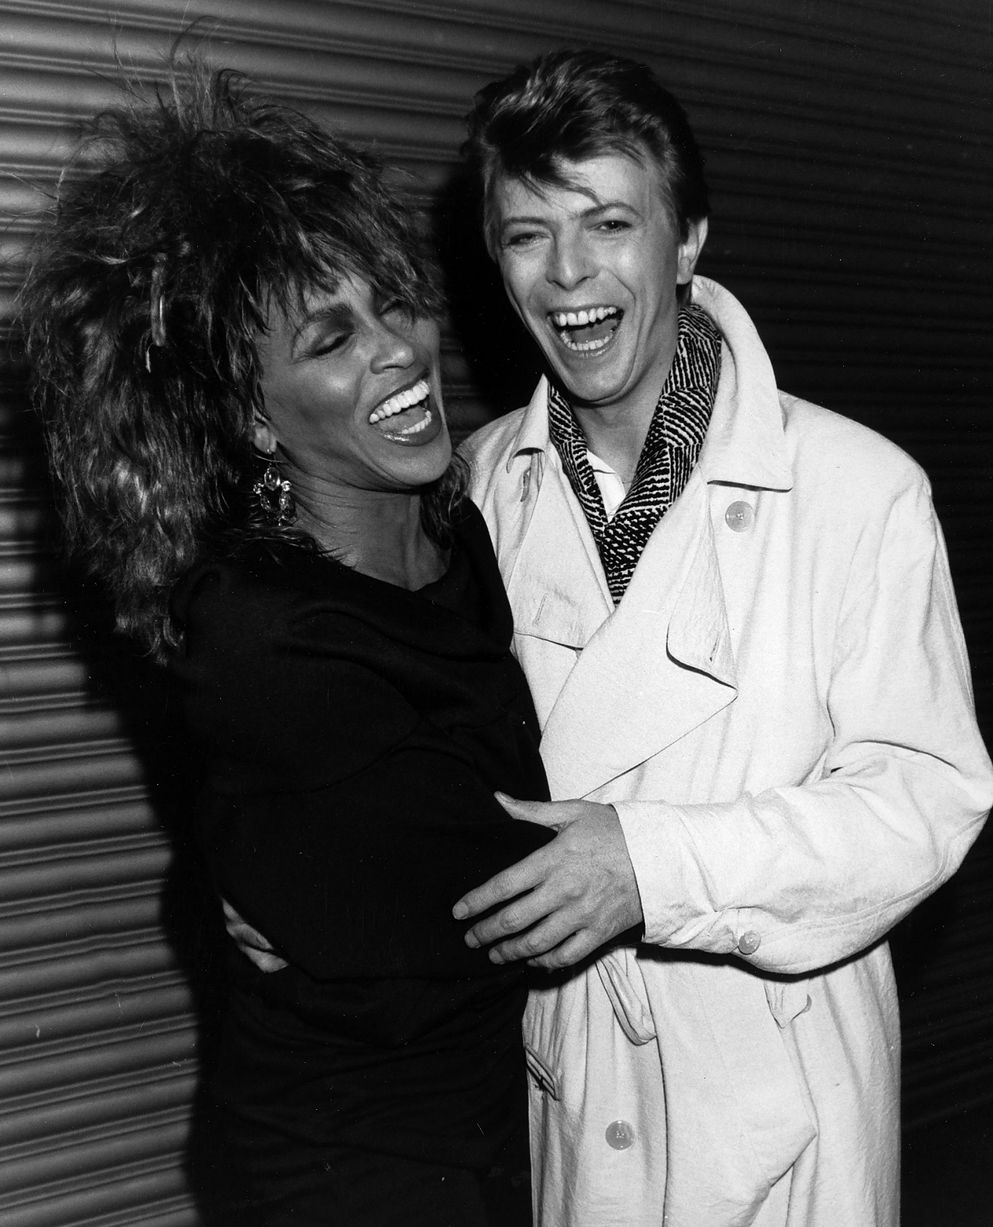 Tina Turner and David Bowie